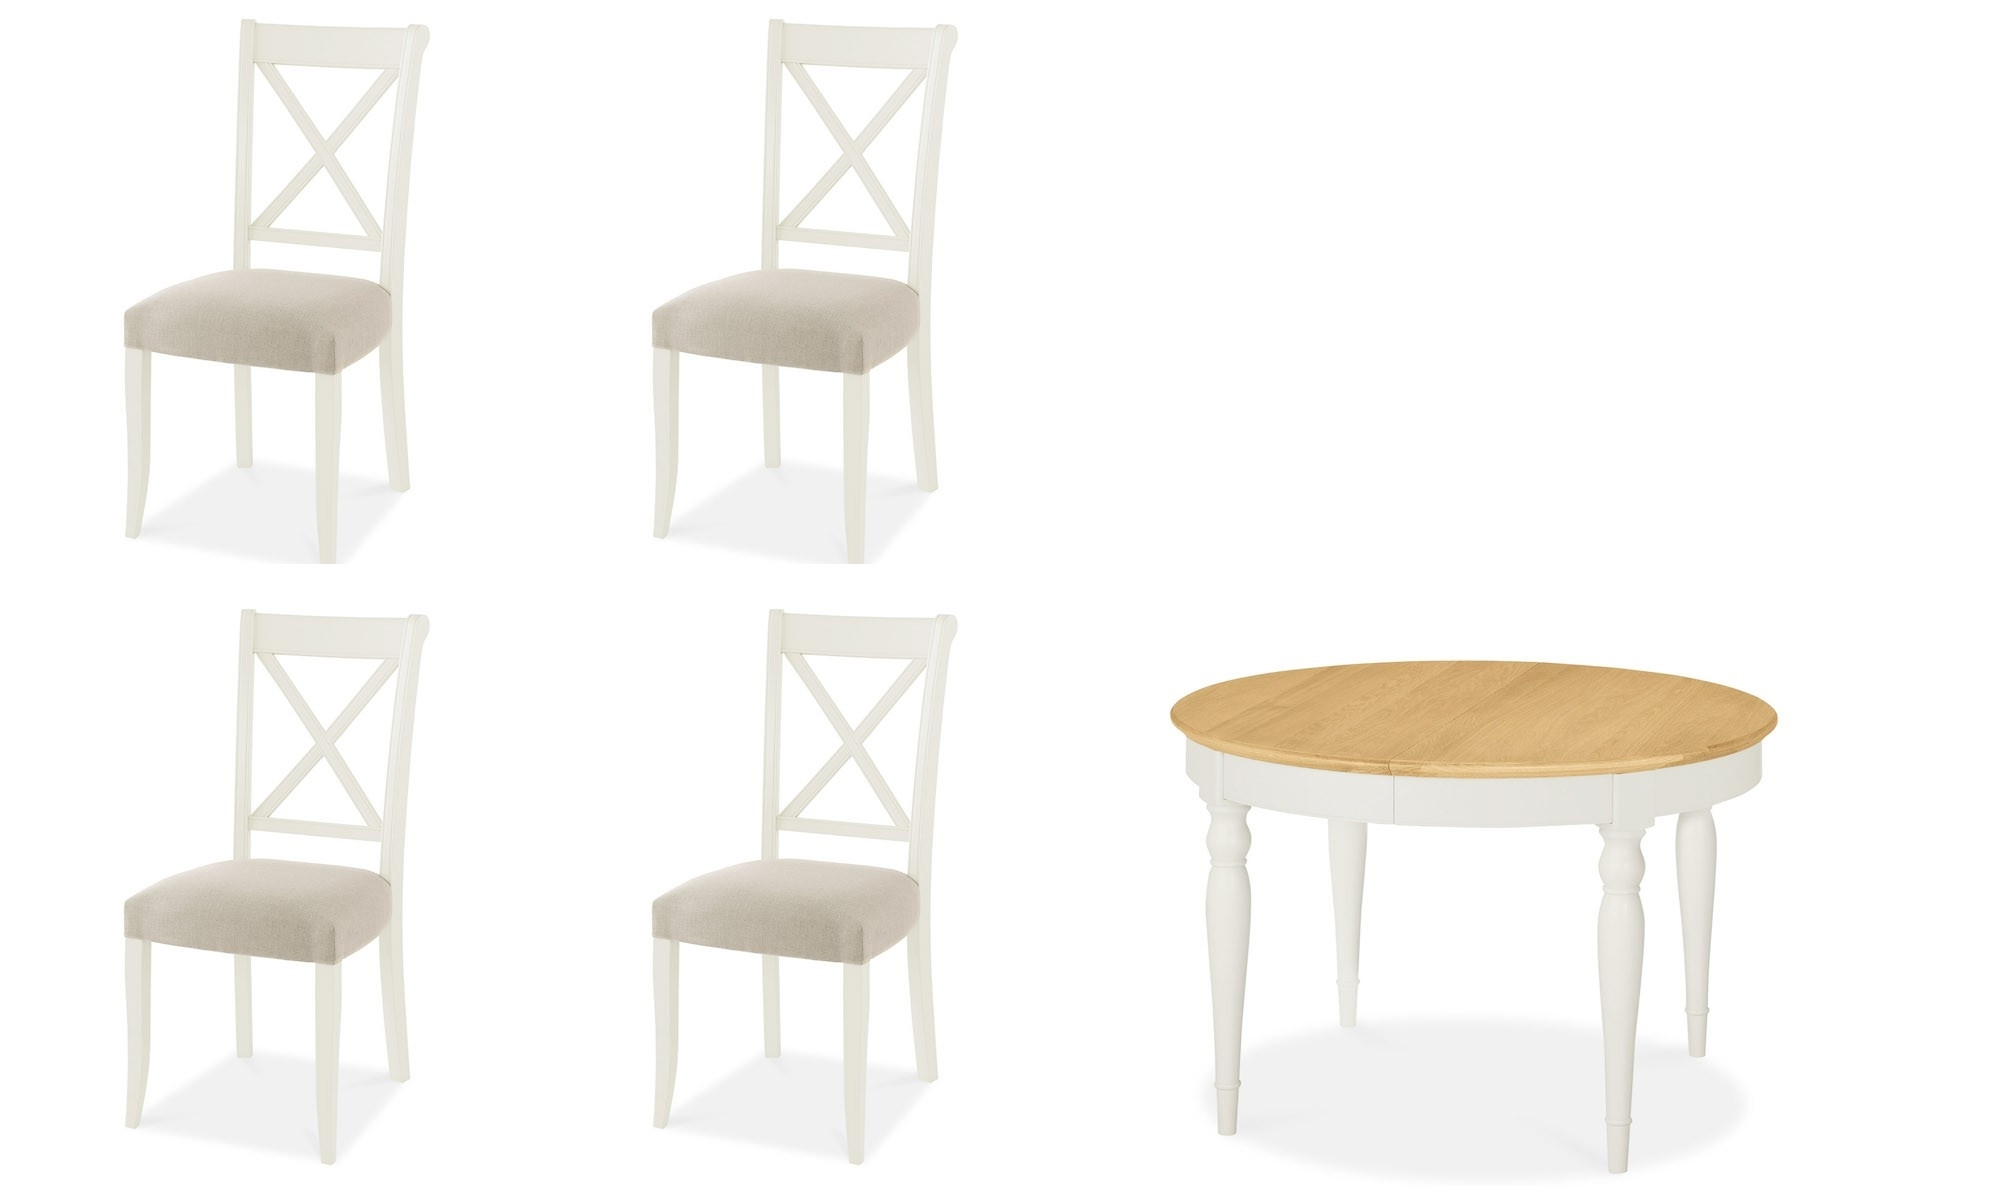 Georgie – Round Extending Dining Table And Chairs In Cream – Oak Top With Best And Newest Round Extendable Dining Tables And Chairs (Gallery 15 of 25)